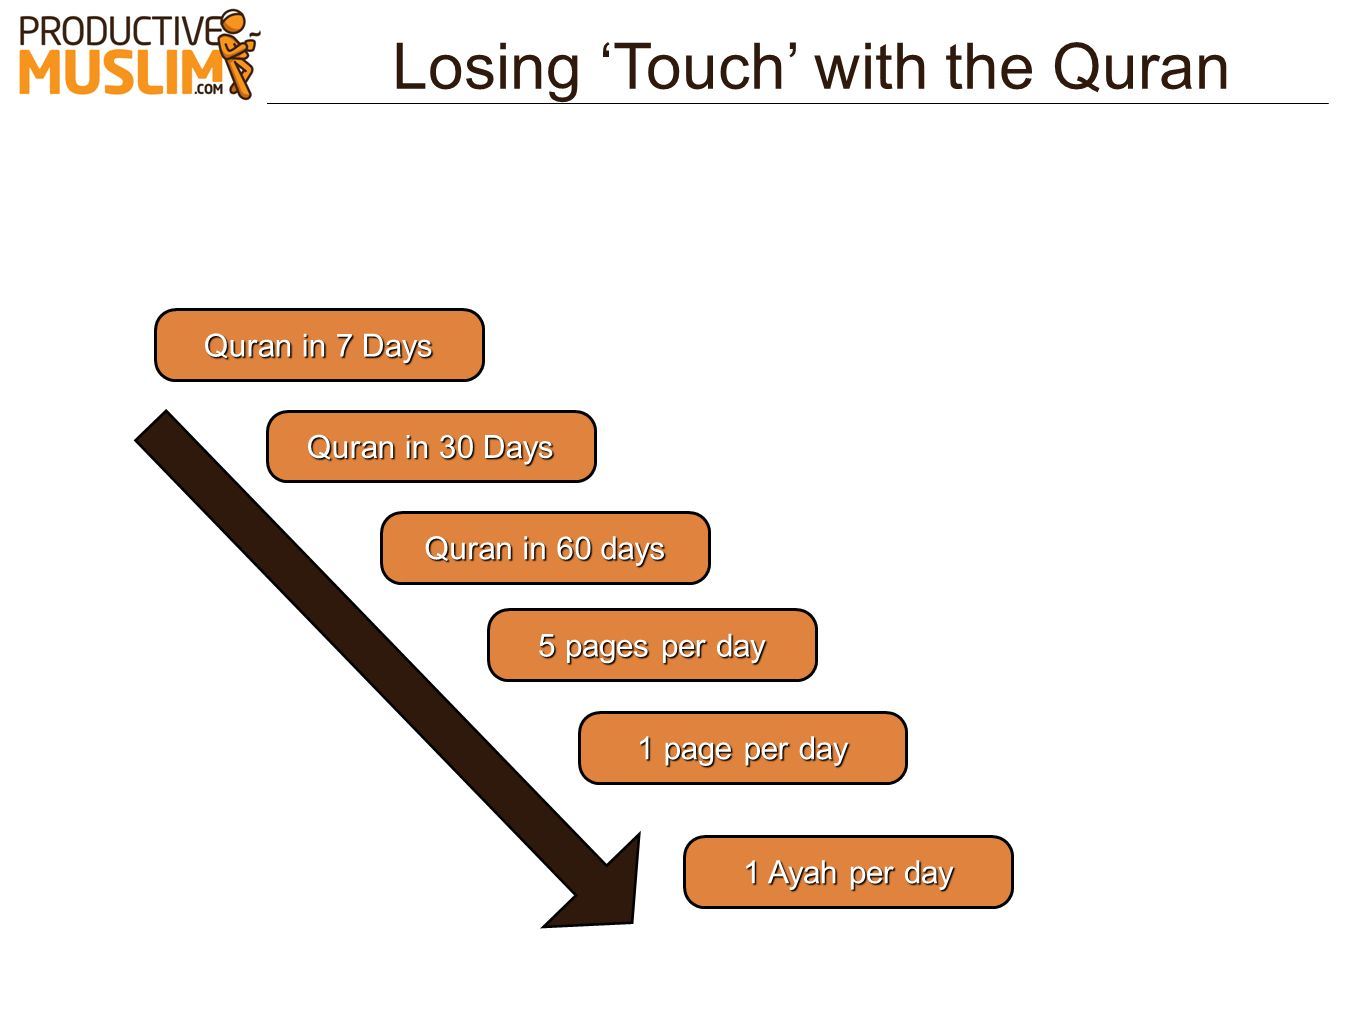 Losing Touch with the Quran Quran in 30 Days Quran in 60 days 5 pages per day 1 page per day 1 Ayah per day Quran in 7 Days